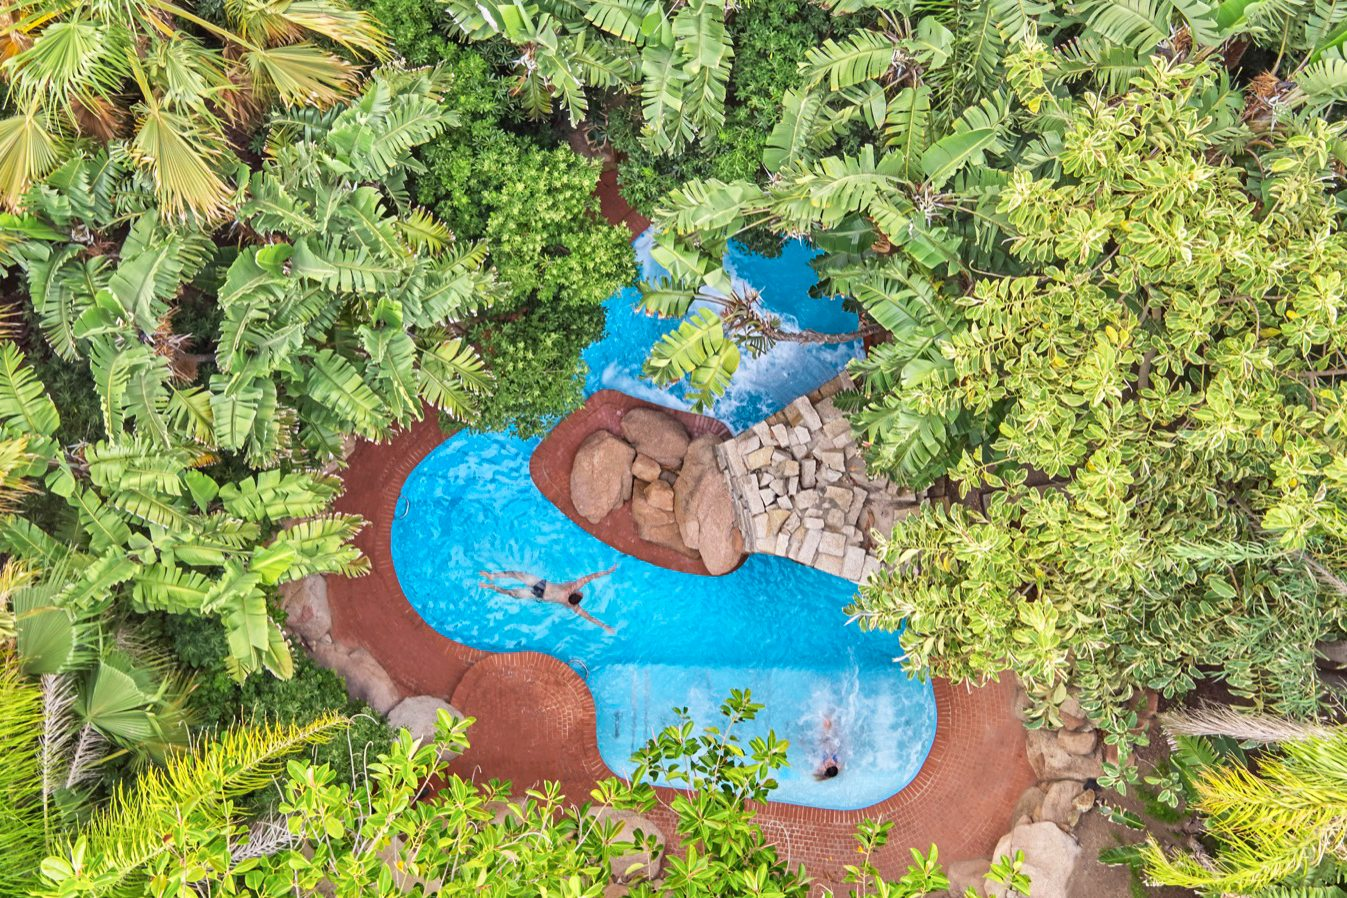 Spa's private pool in tropical garden at Forte Village Resort